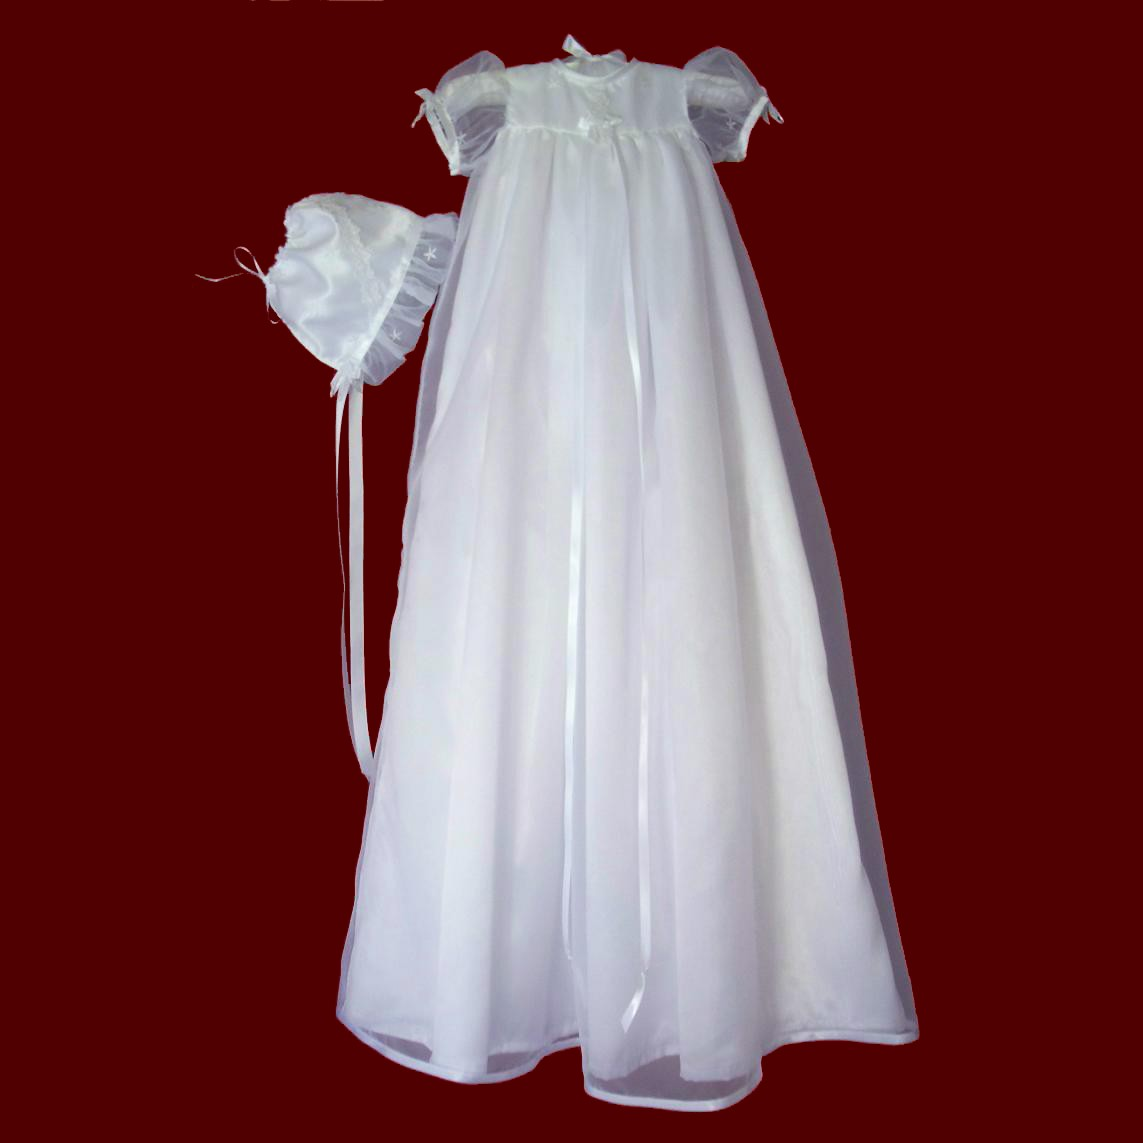 Sheer Organza Christening Gown With Ribbon Trim